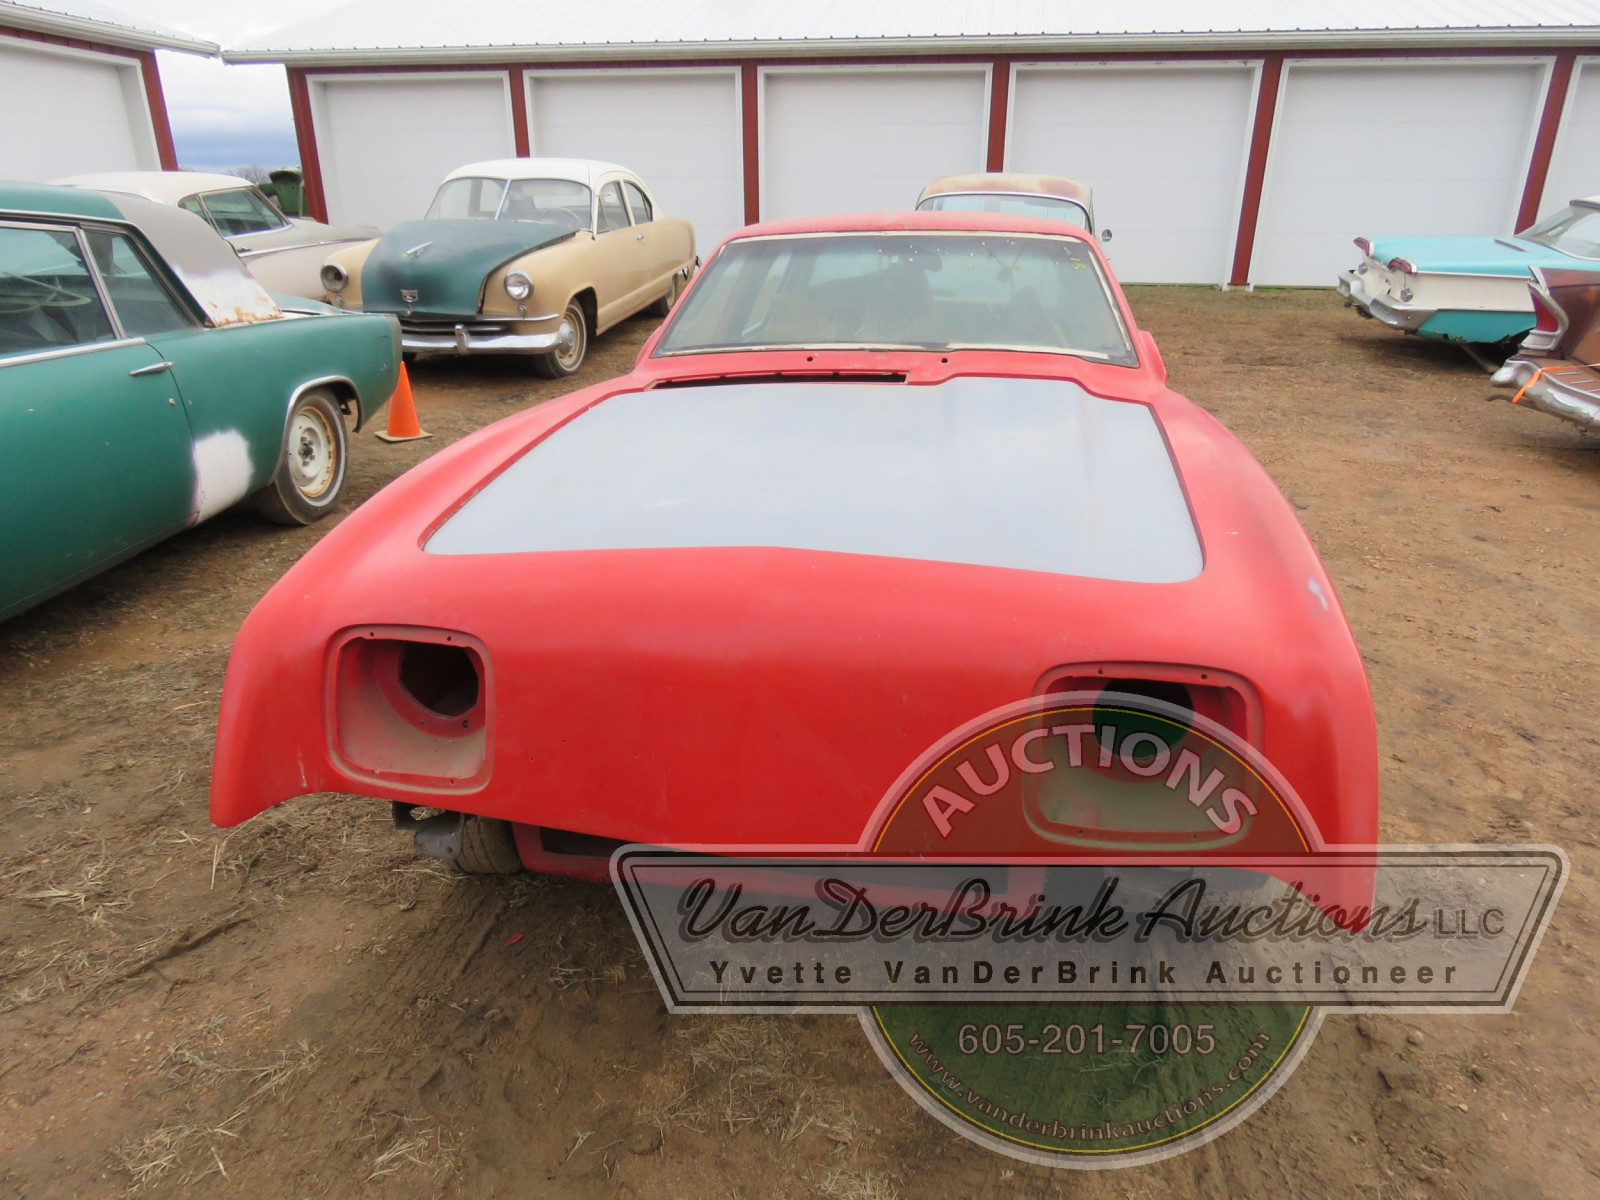 1990 Studebaker Avanti 4dr Sedan Project - Image 2